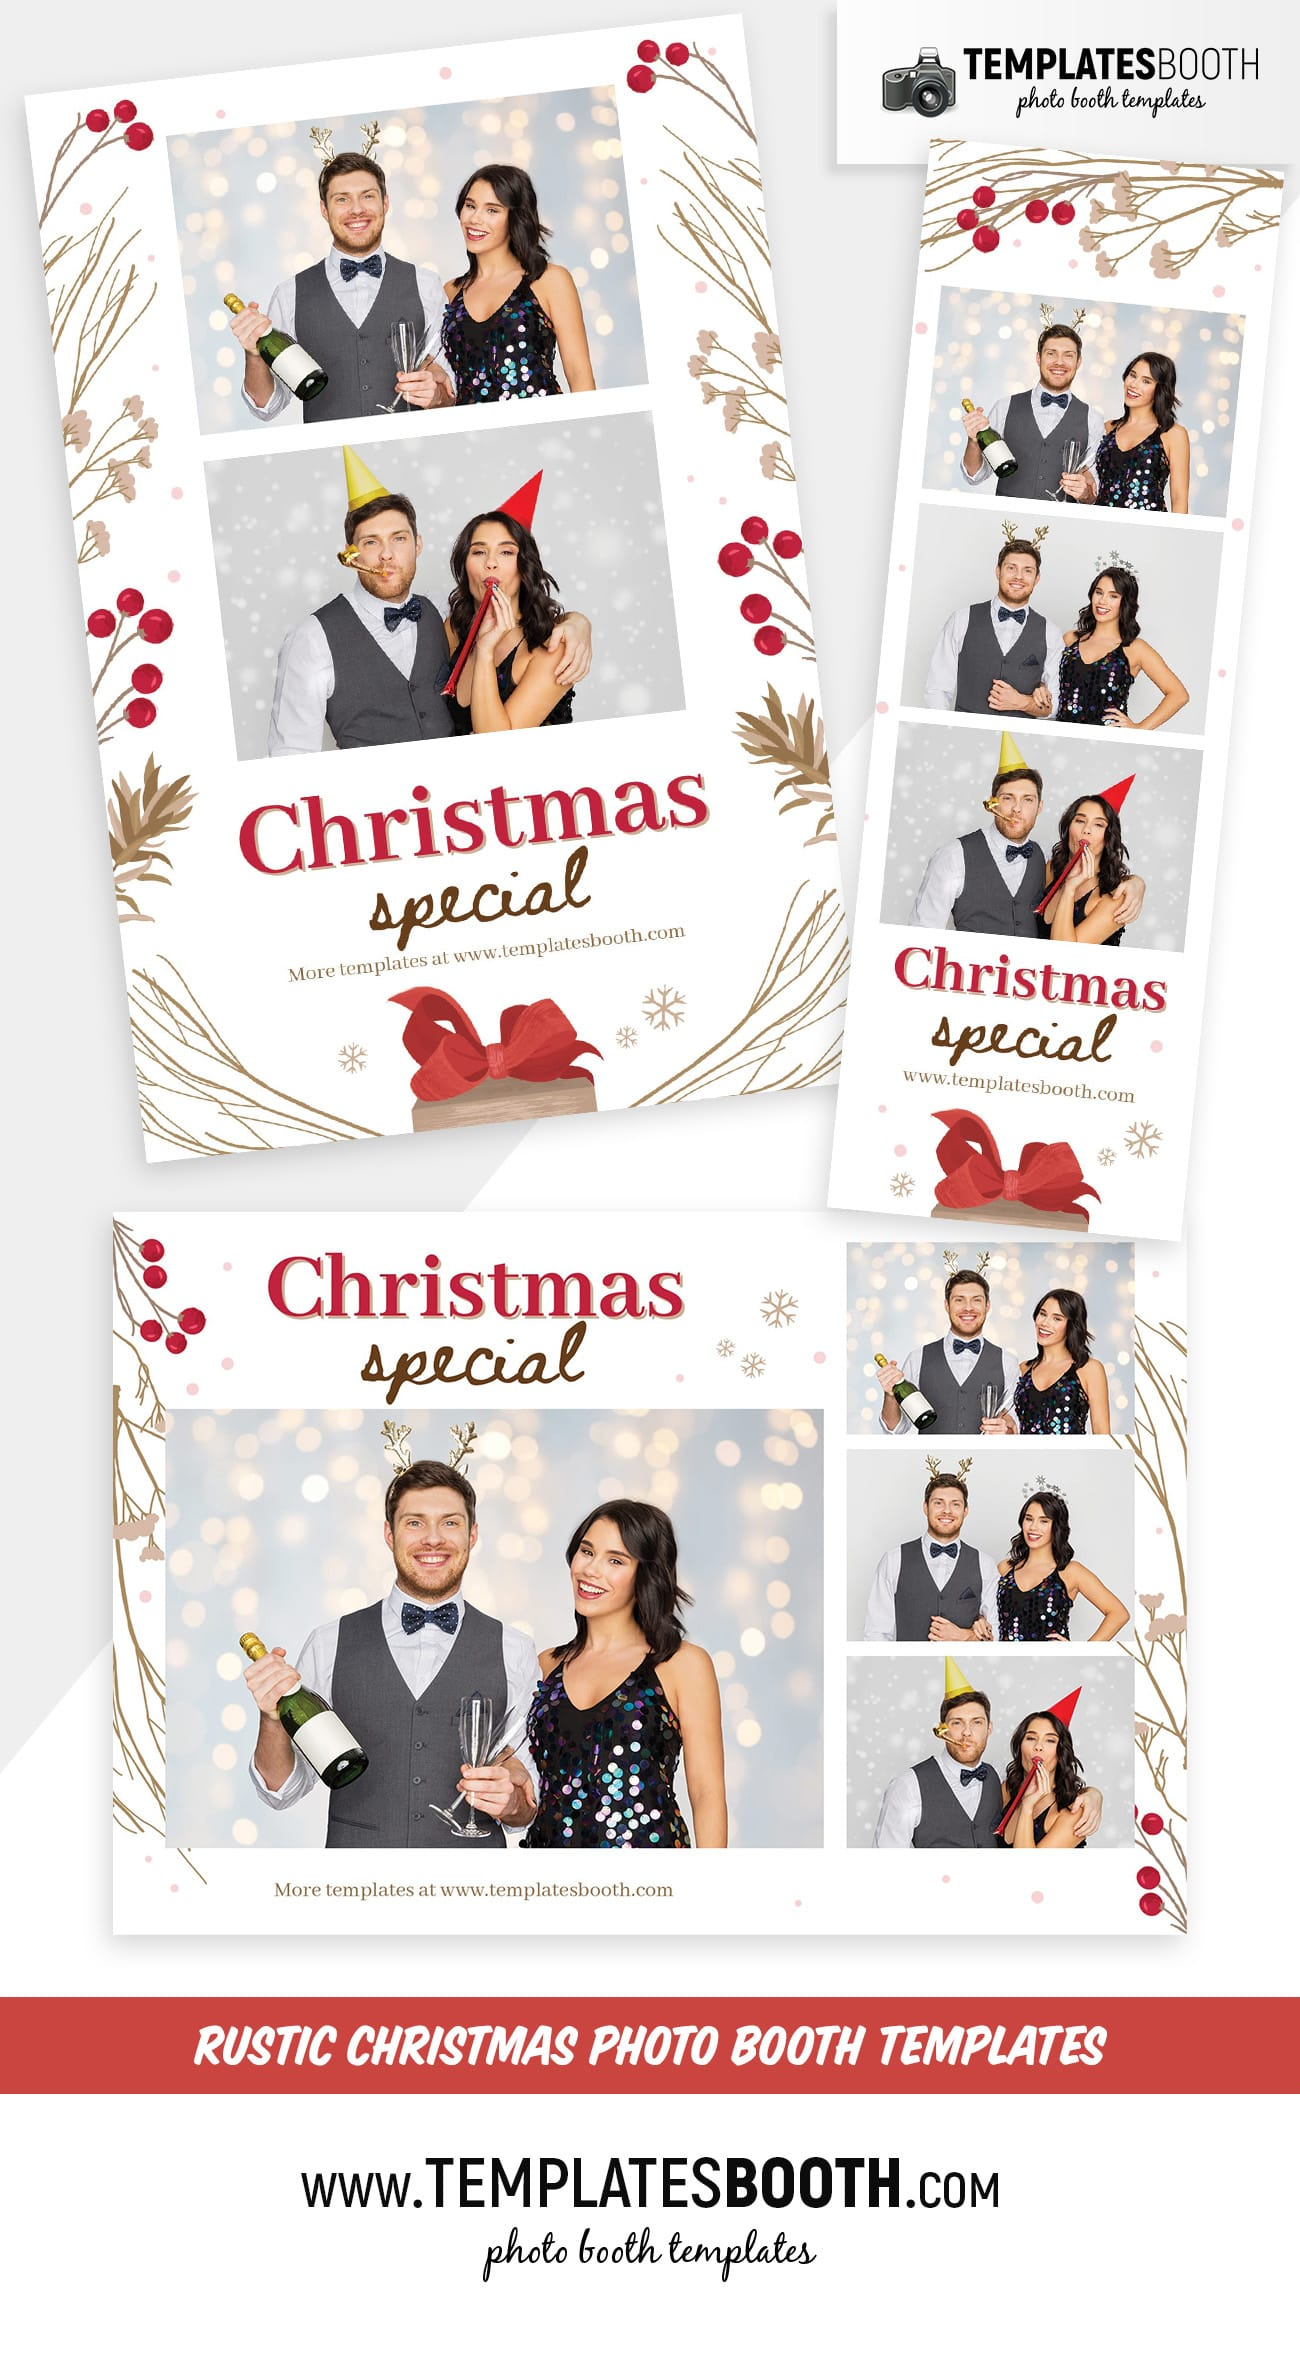 Rustic Christmas Photo Booth Templates